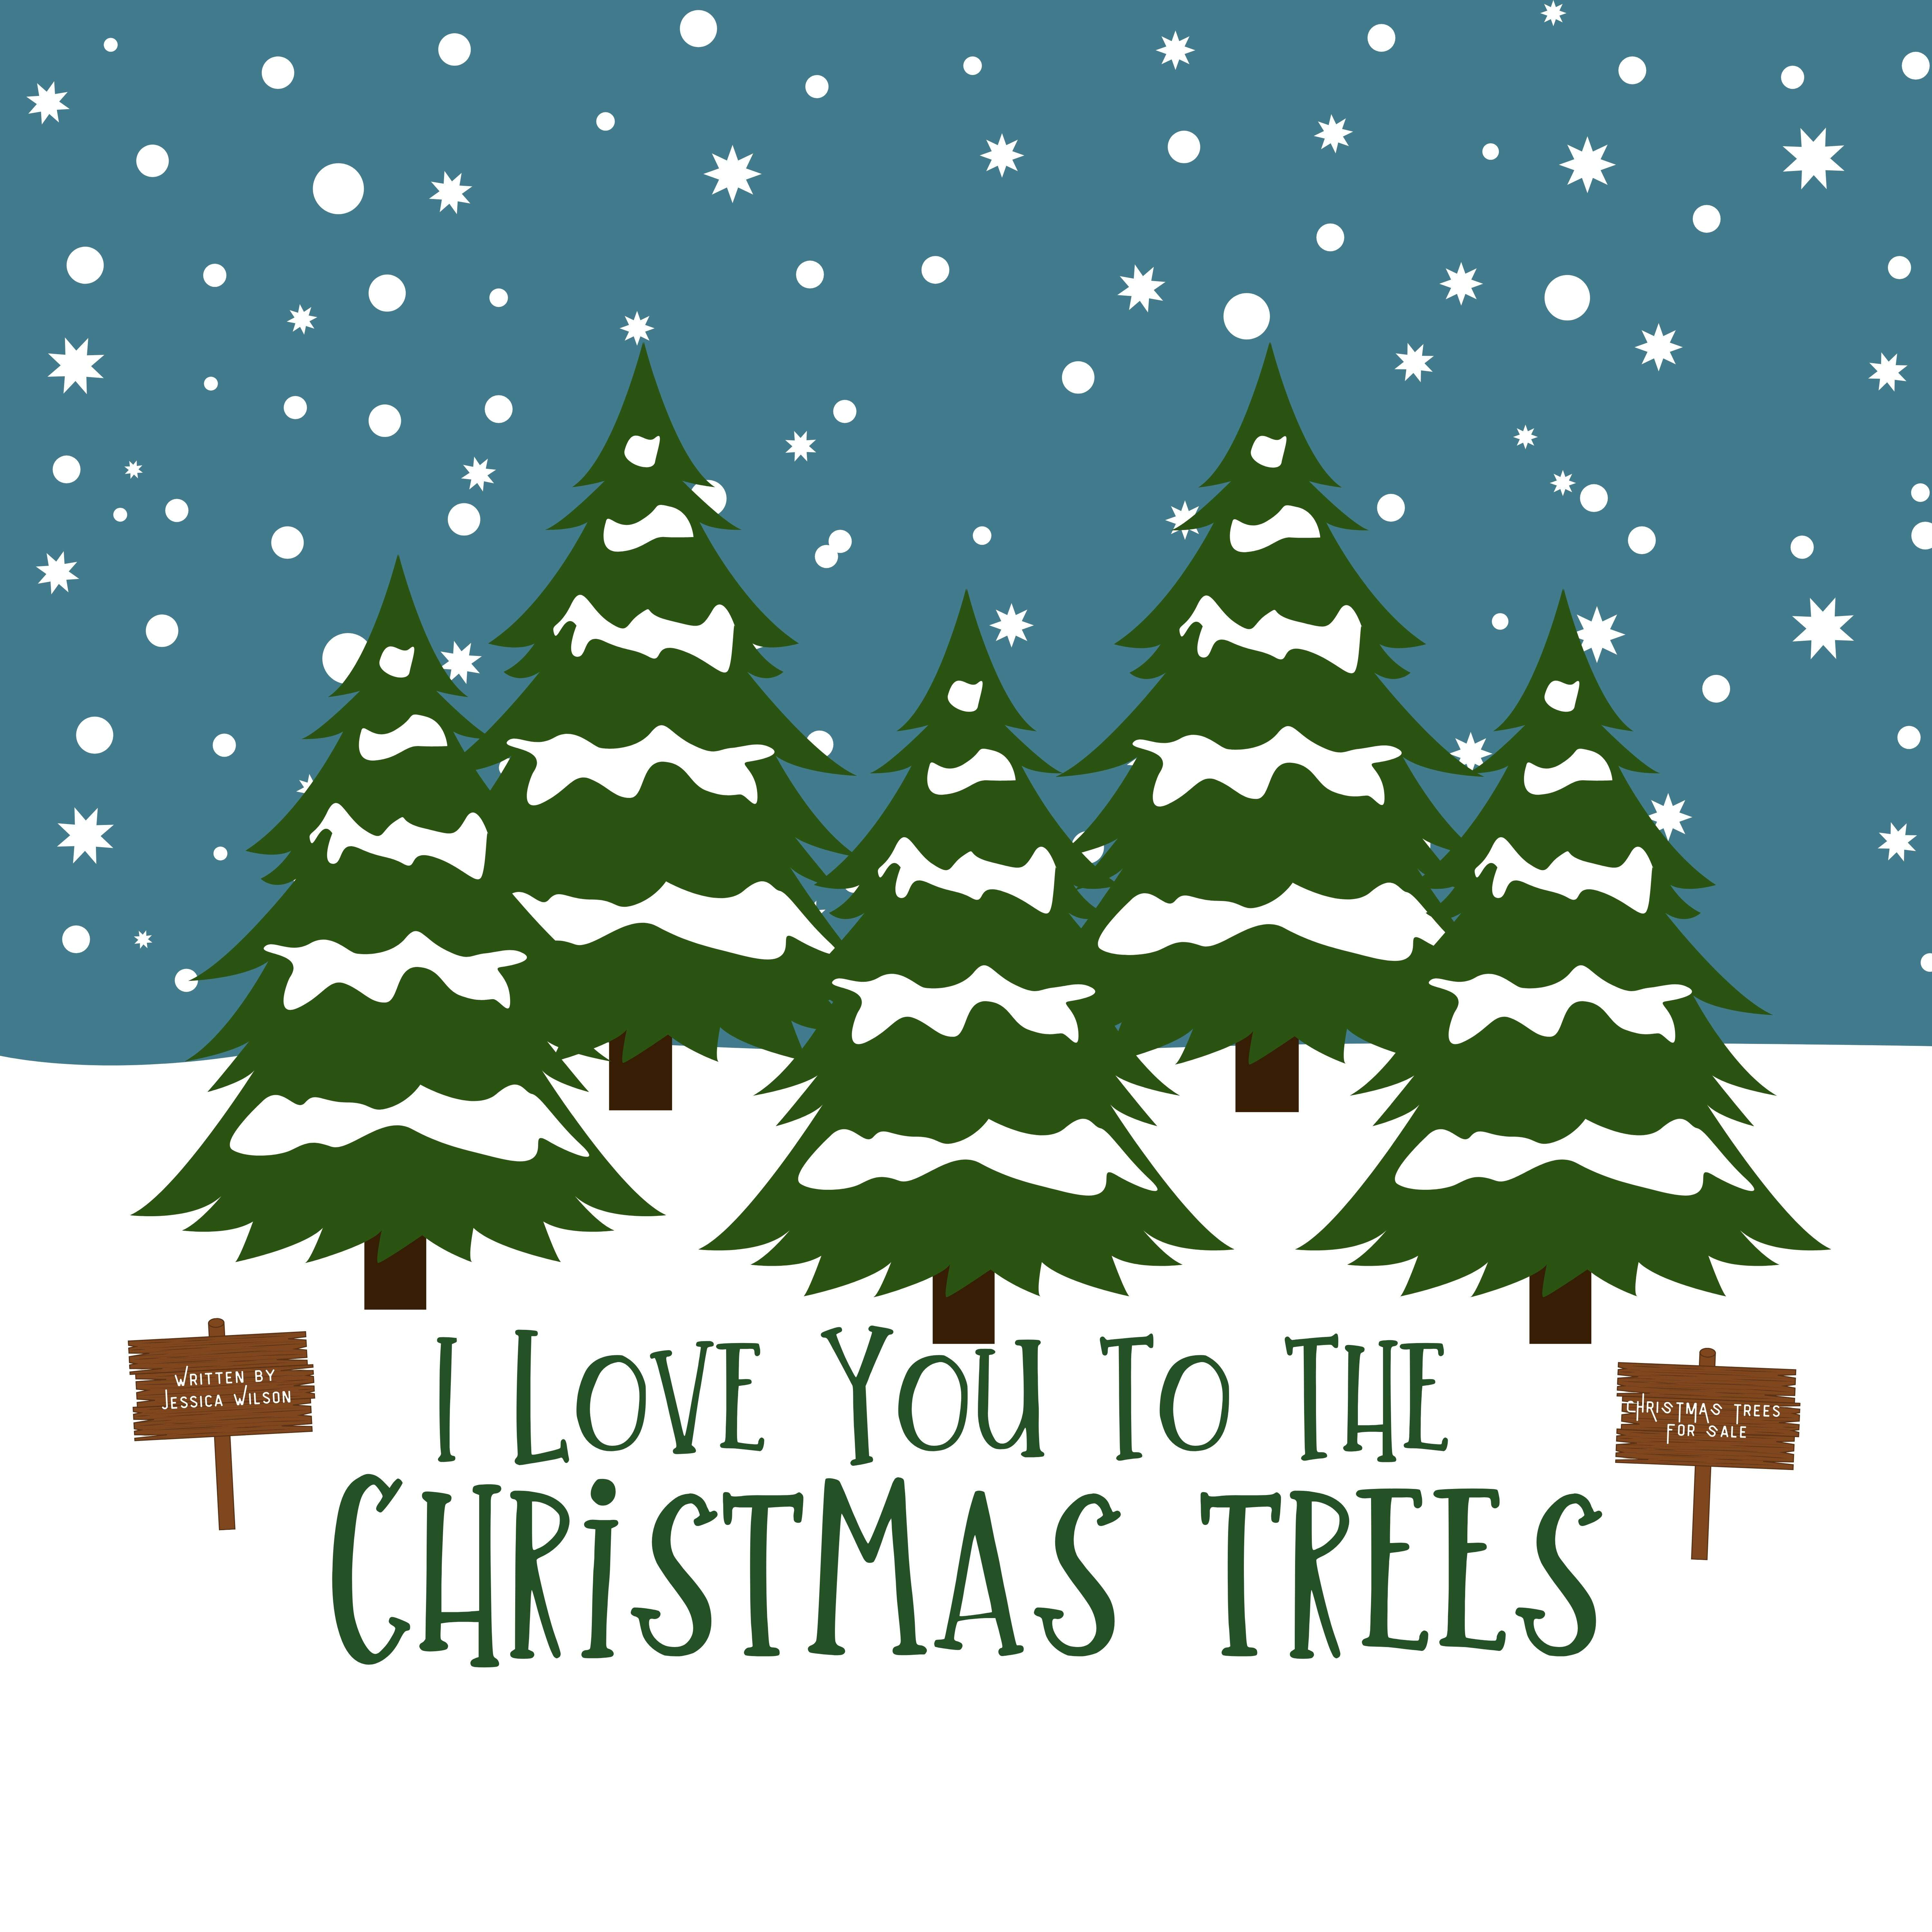 I Love You To The Christmas Trees